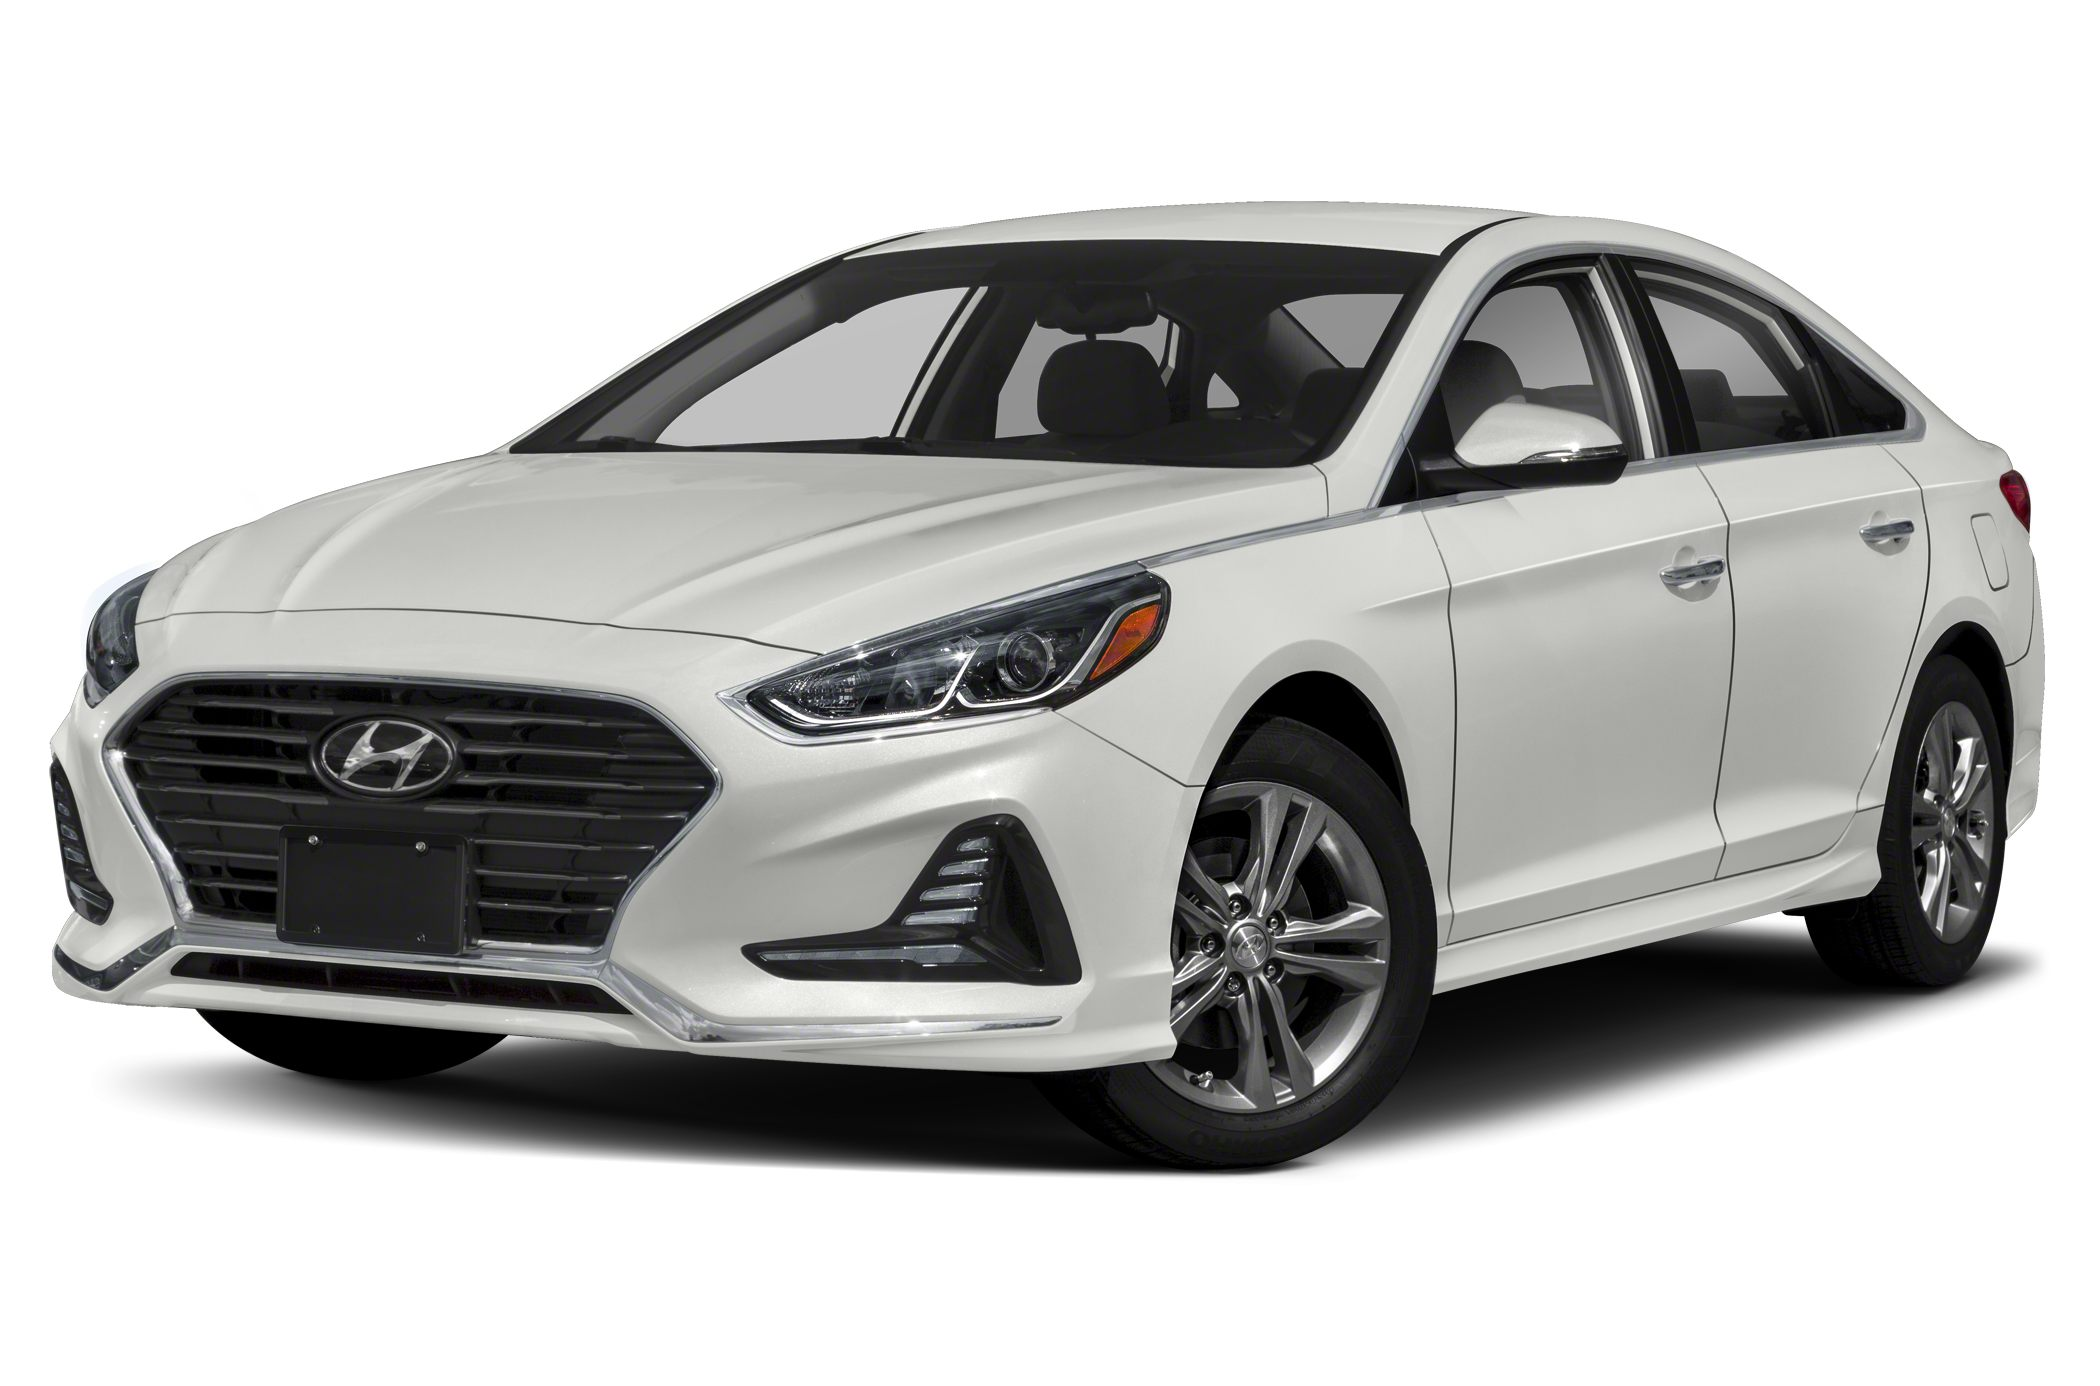 Hyundai Canada Incentives for the new 2018 Hyundai Sonata and Sonata Hybrid in Milton, Toronto, and the GTA